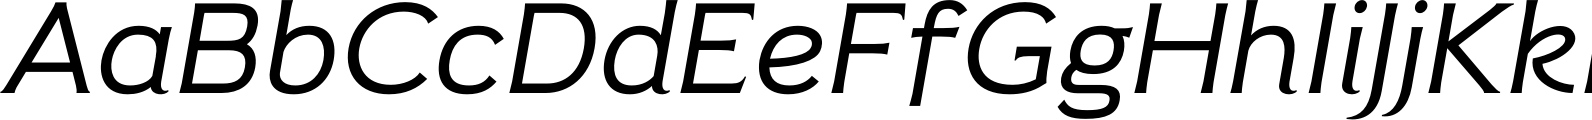 Pseudonym Wide Italic Font